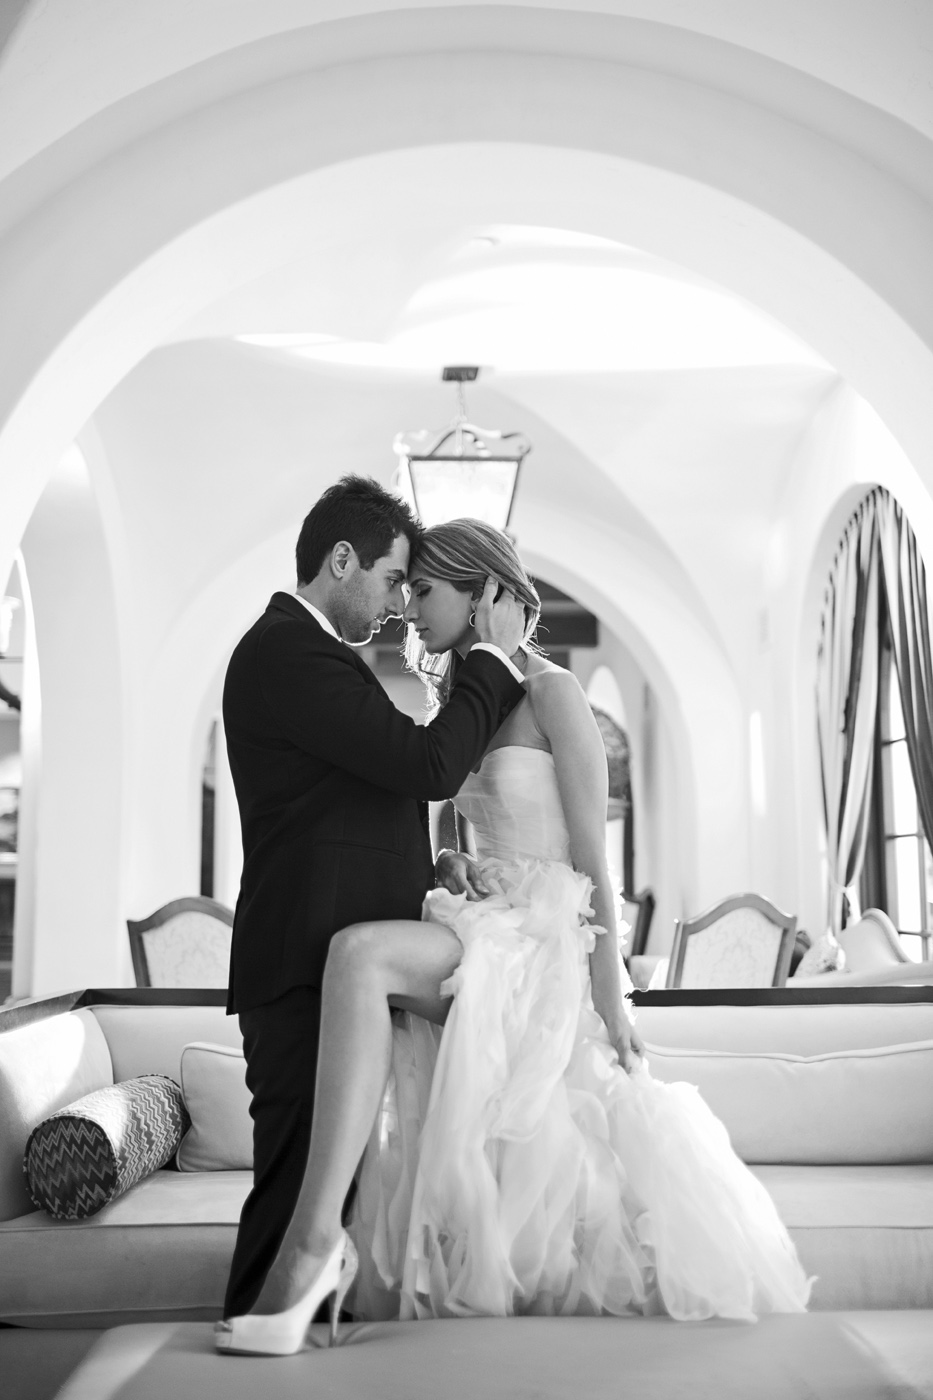 040DukePhotography_DukeImages_weddings_losangeles.jpg